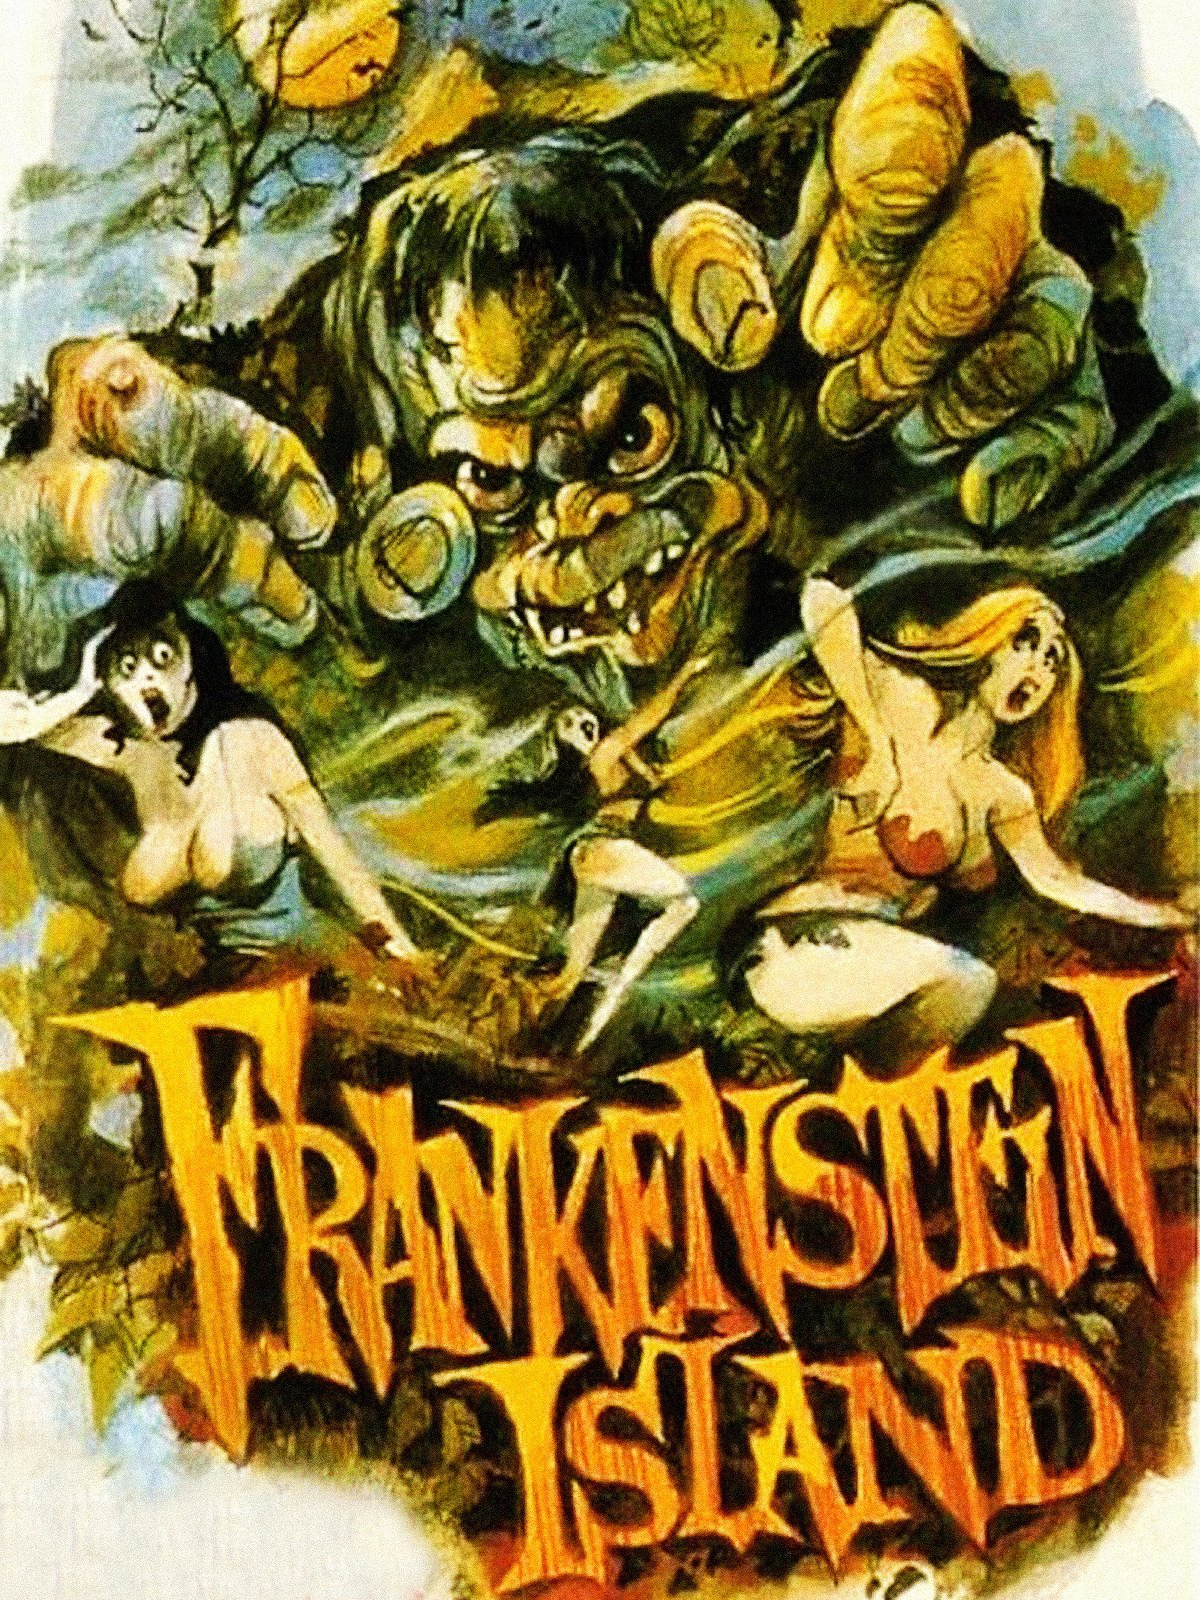 Frankenstein Island on Amazon Prime Video UK